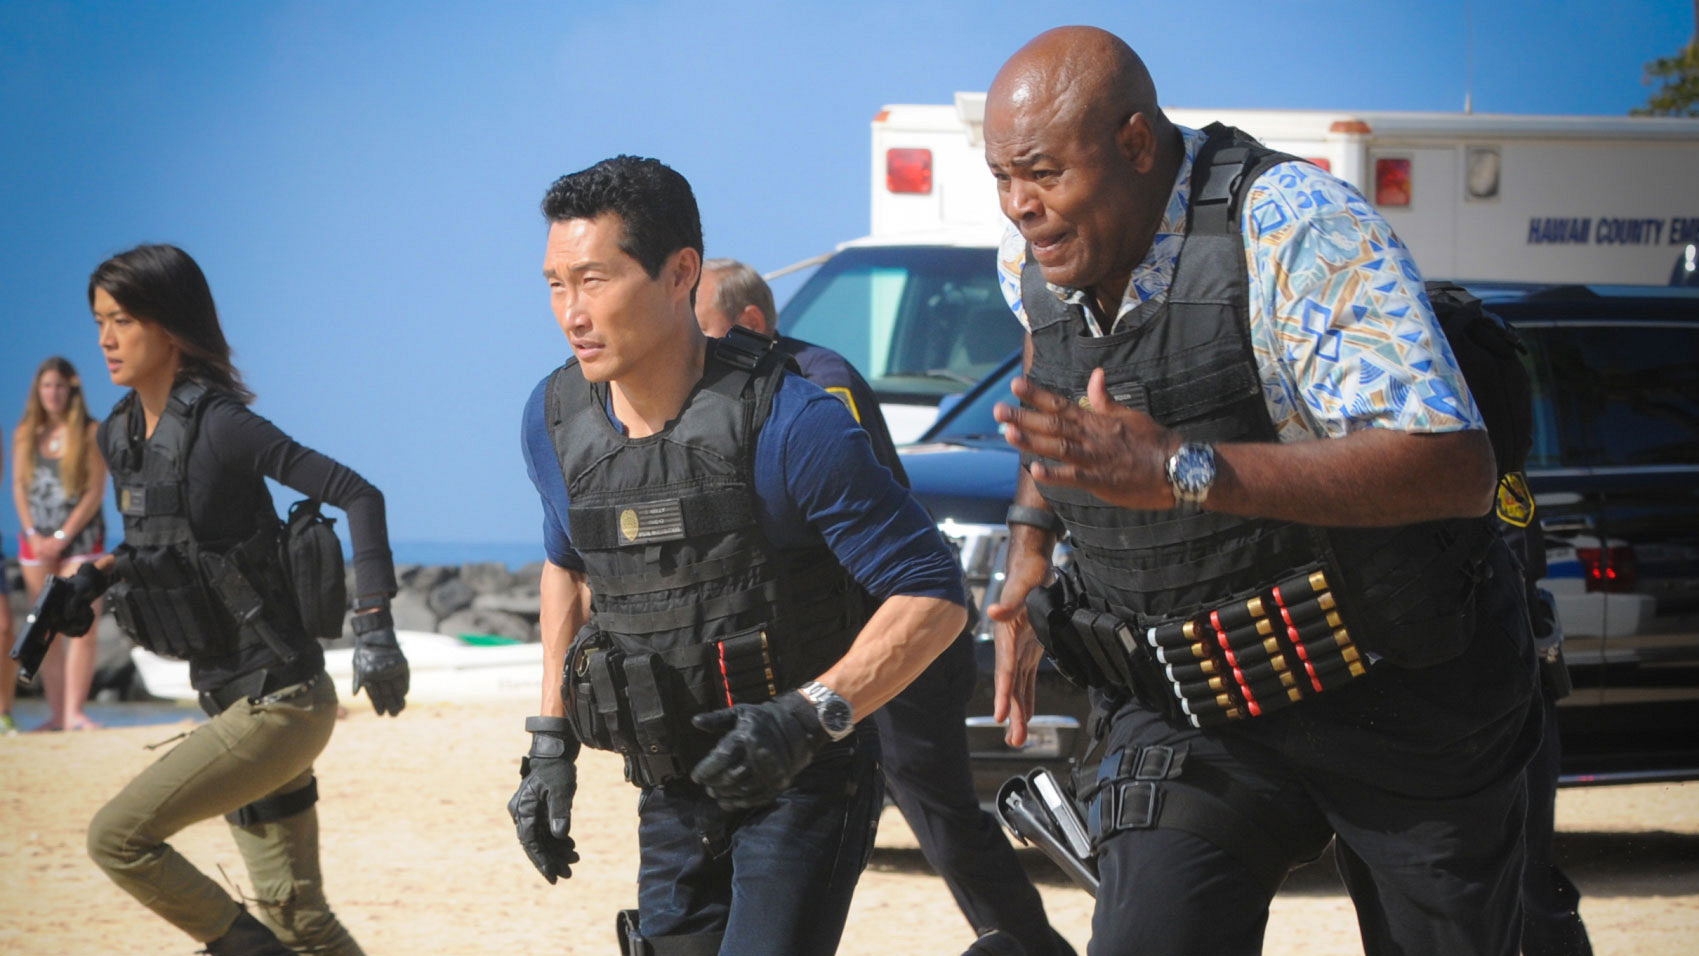 Hawaii Five-0 returns for a 7th season on Friday, Sept. 23 at 9/8c.